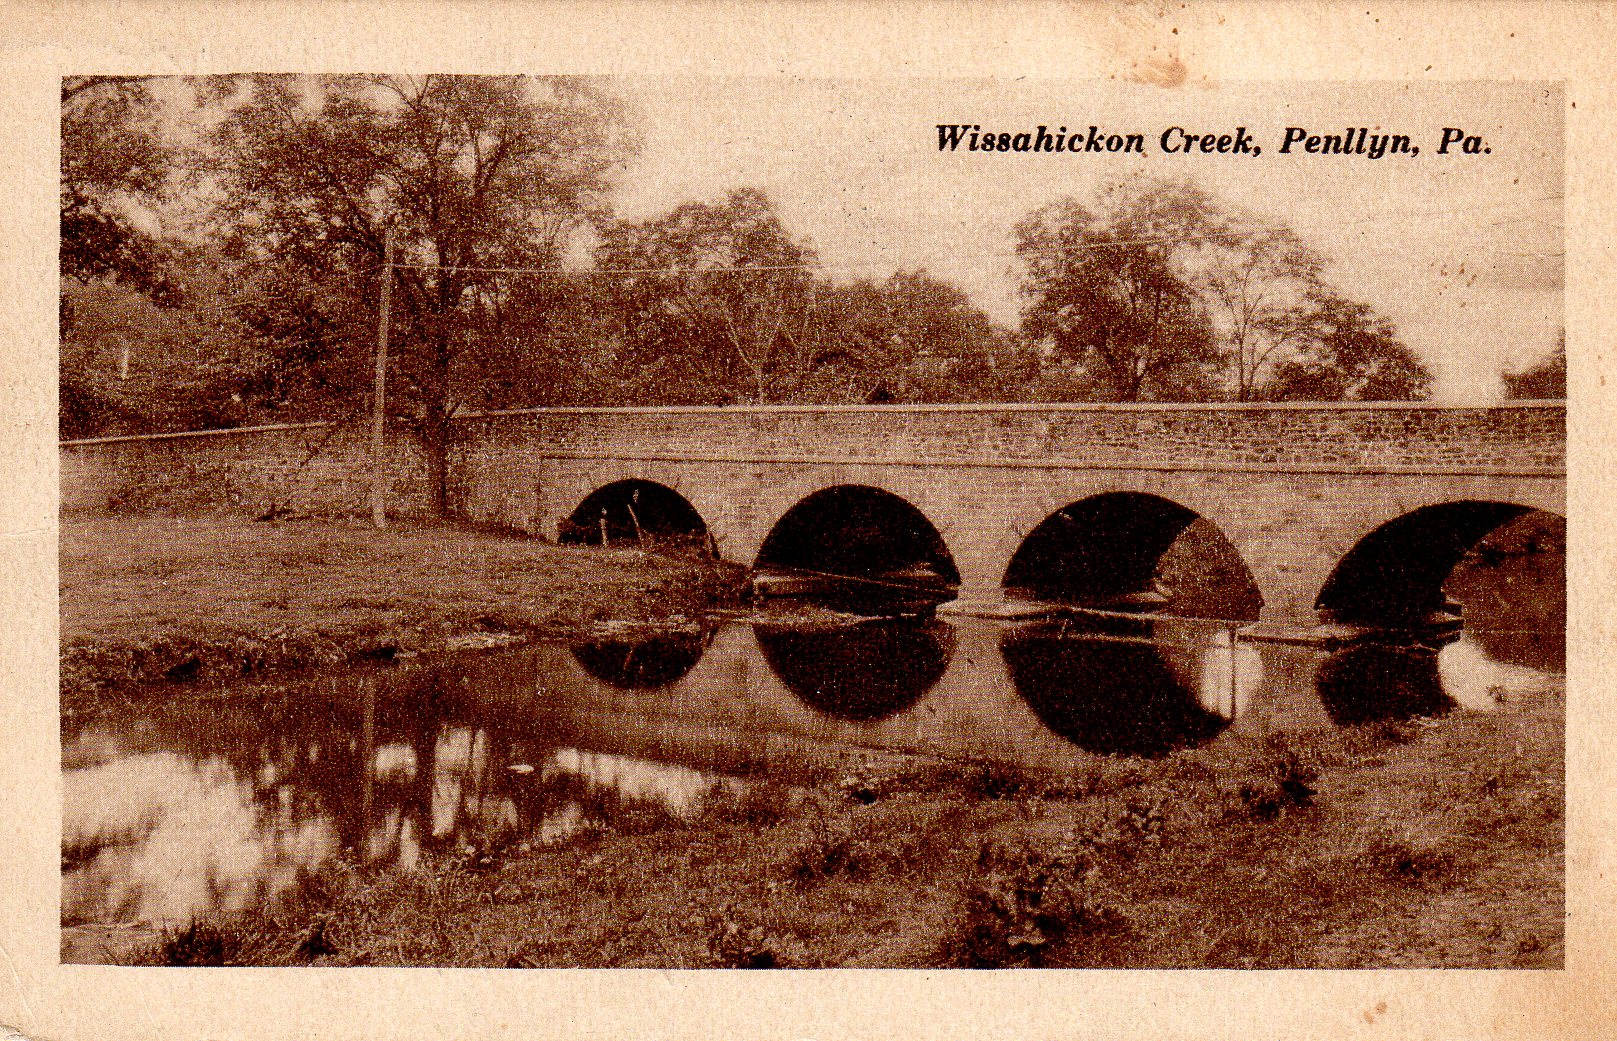 Post Card Collection (E Simon)_2682_72_Wissahickon Creek, Penllyn, Pa_Sep 1926